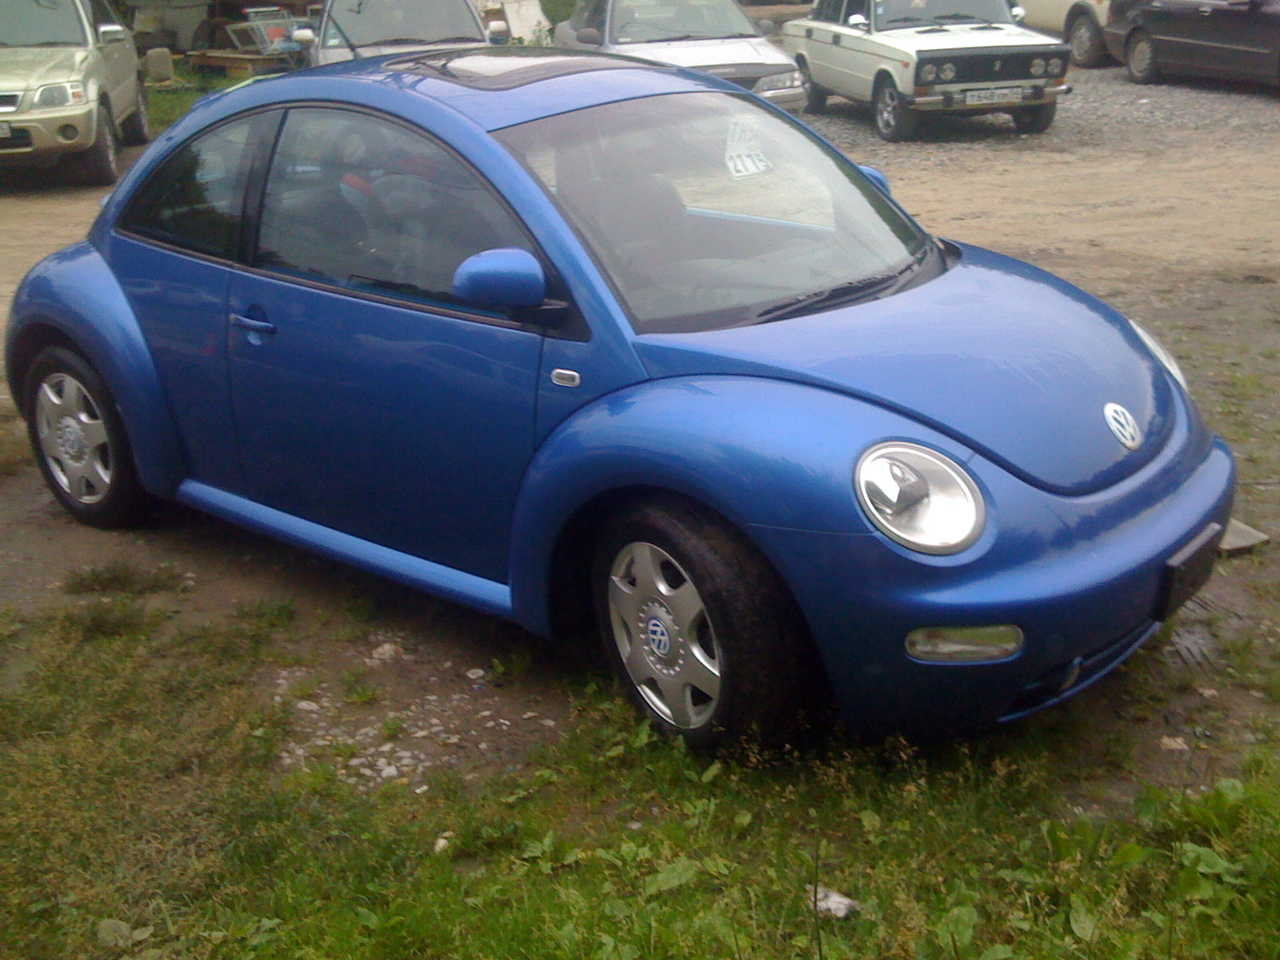 Used 2001 volkswagen new beetle photos 2 0 gasoline ff for 2001 vw beetle window problems